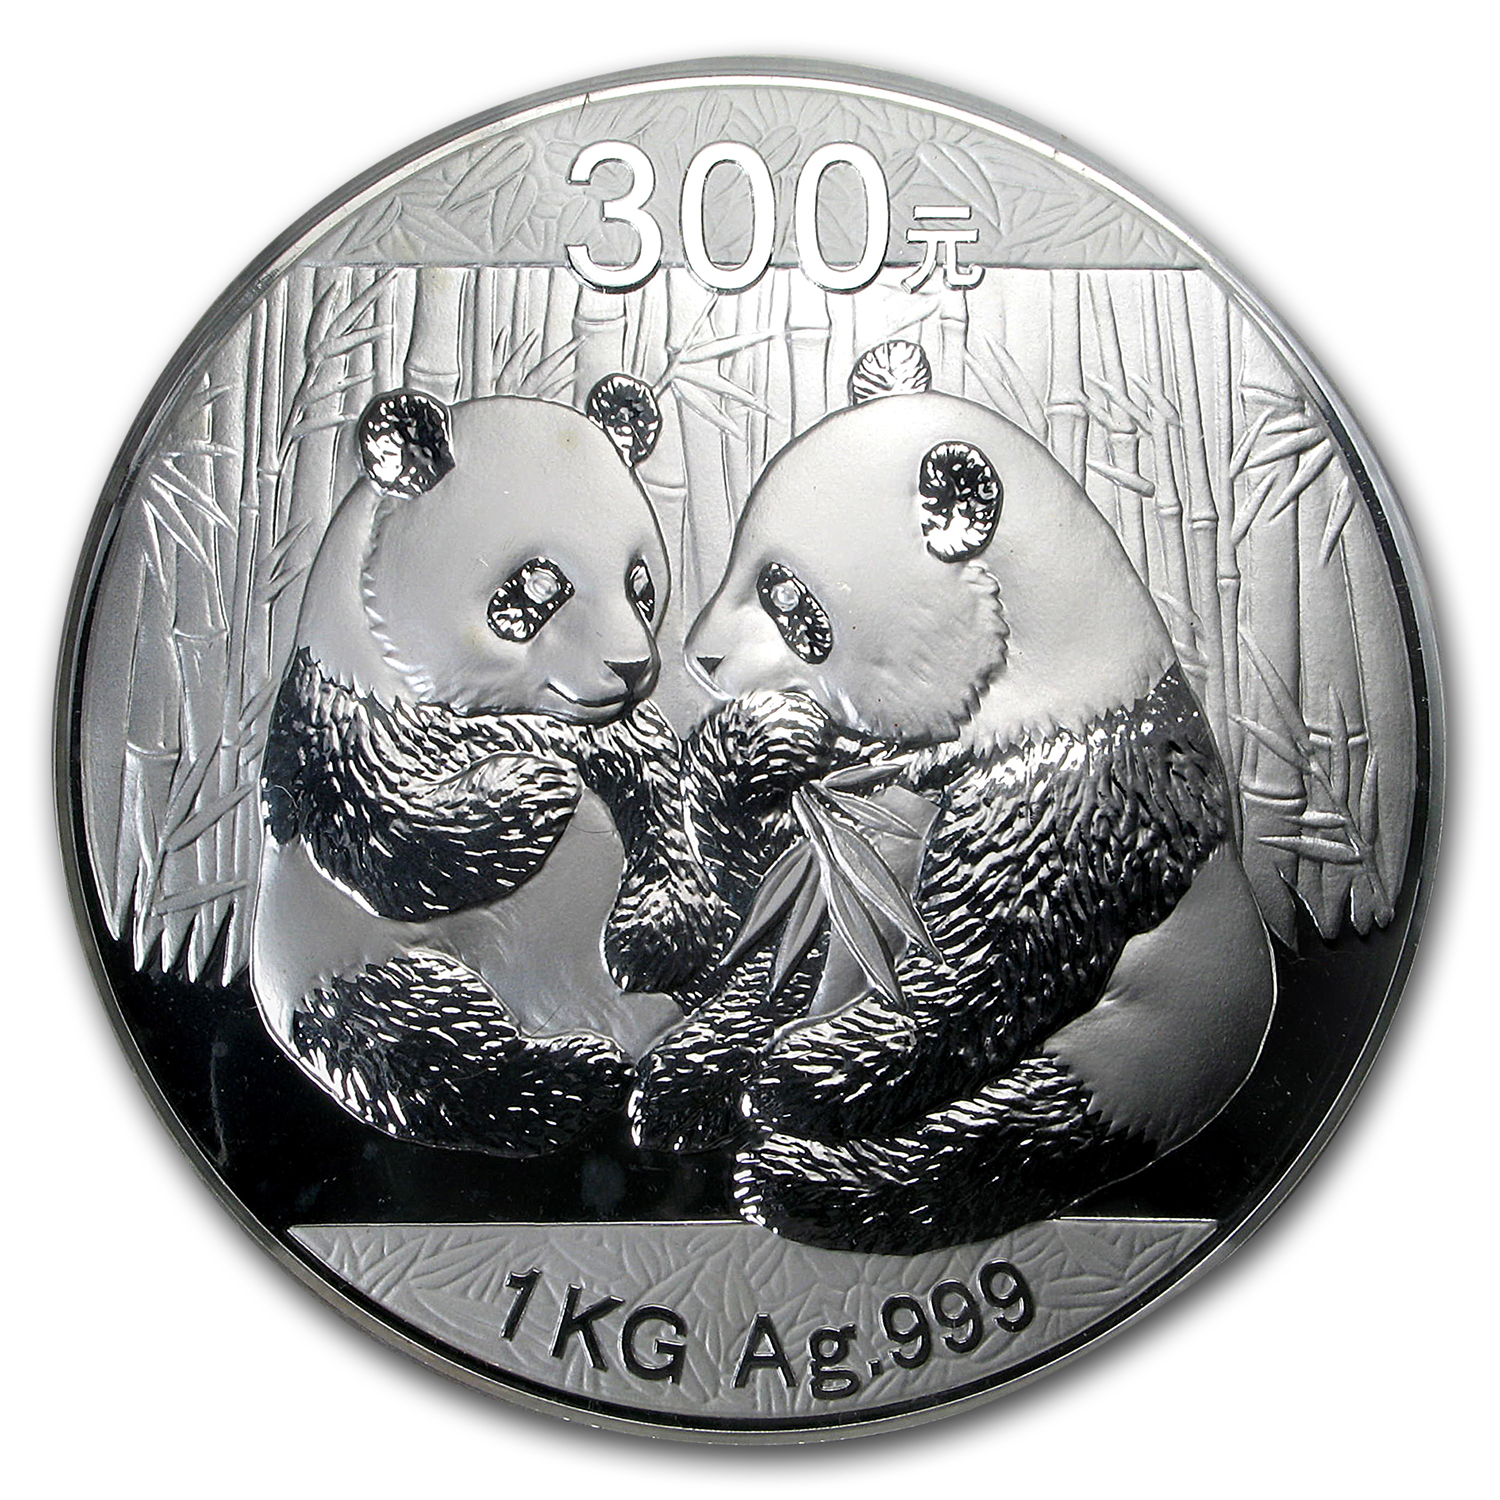 2009 China 1 kilo Silver Panda Proof (w/Box & COA)